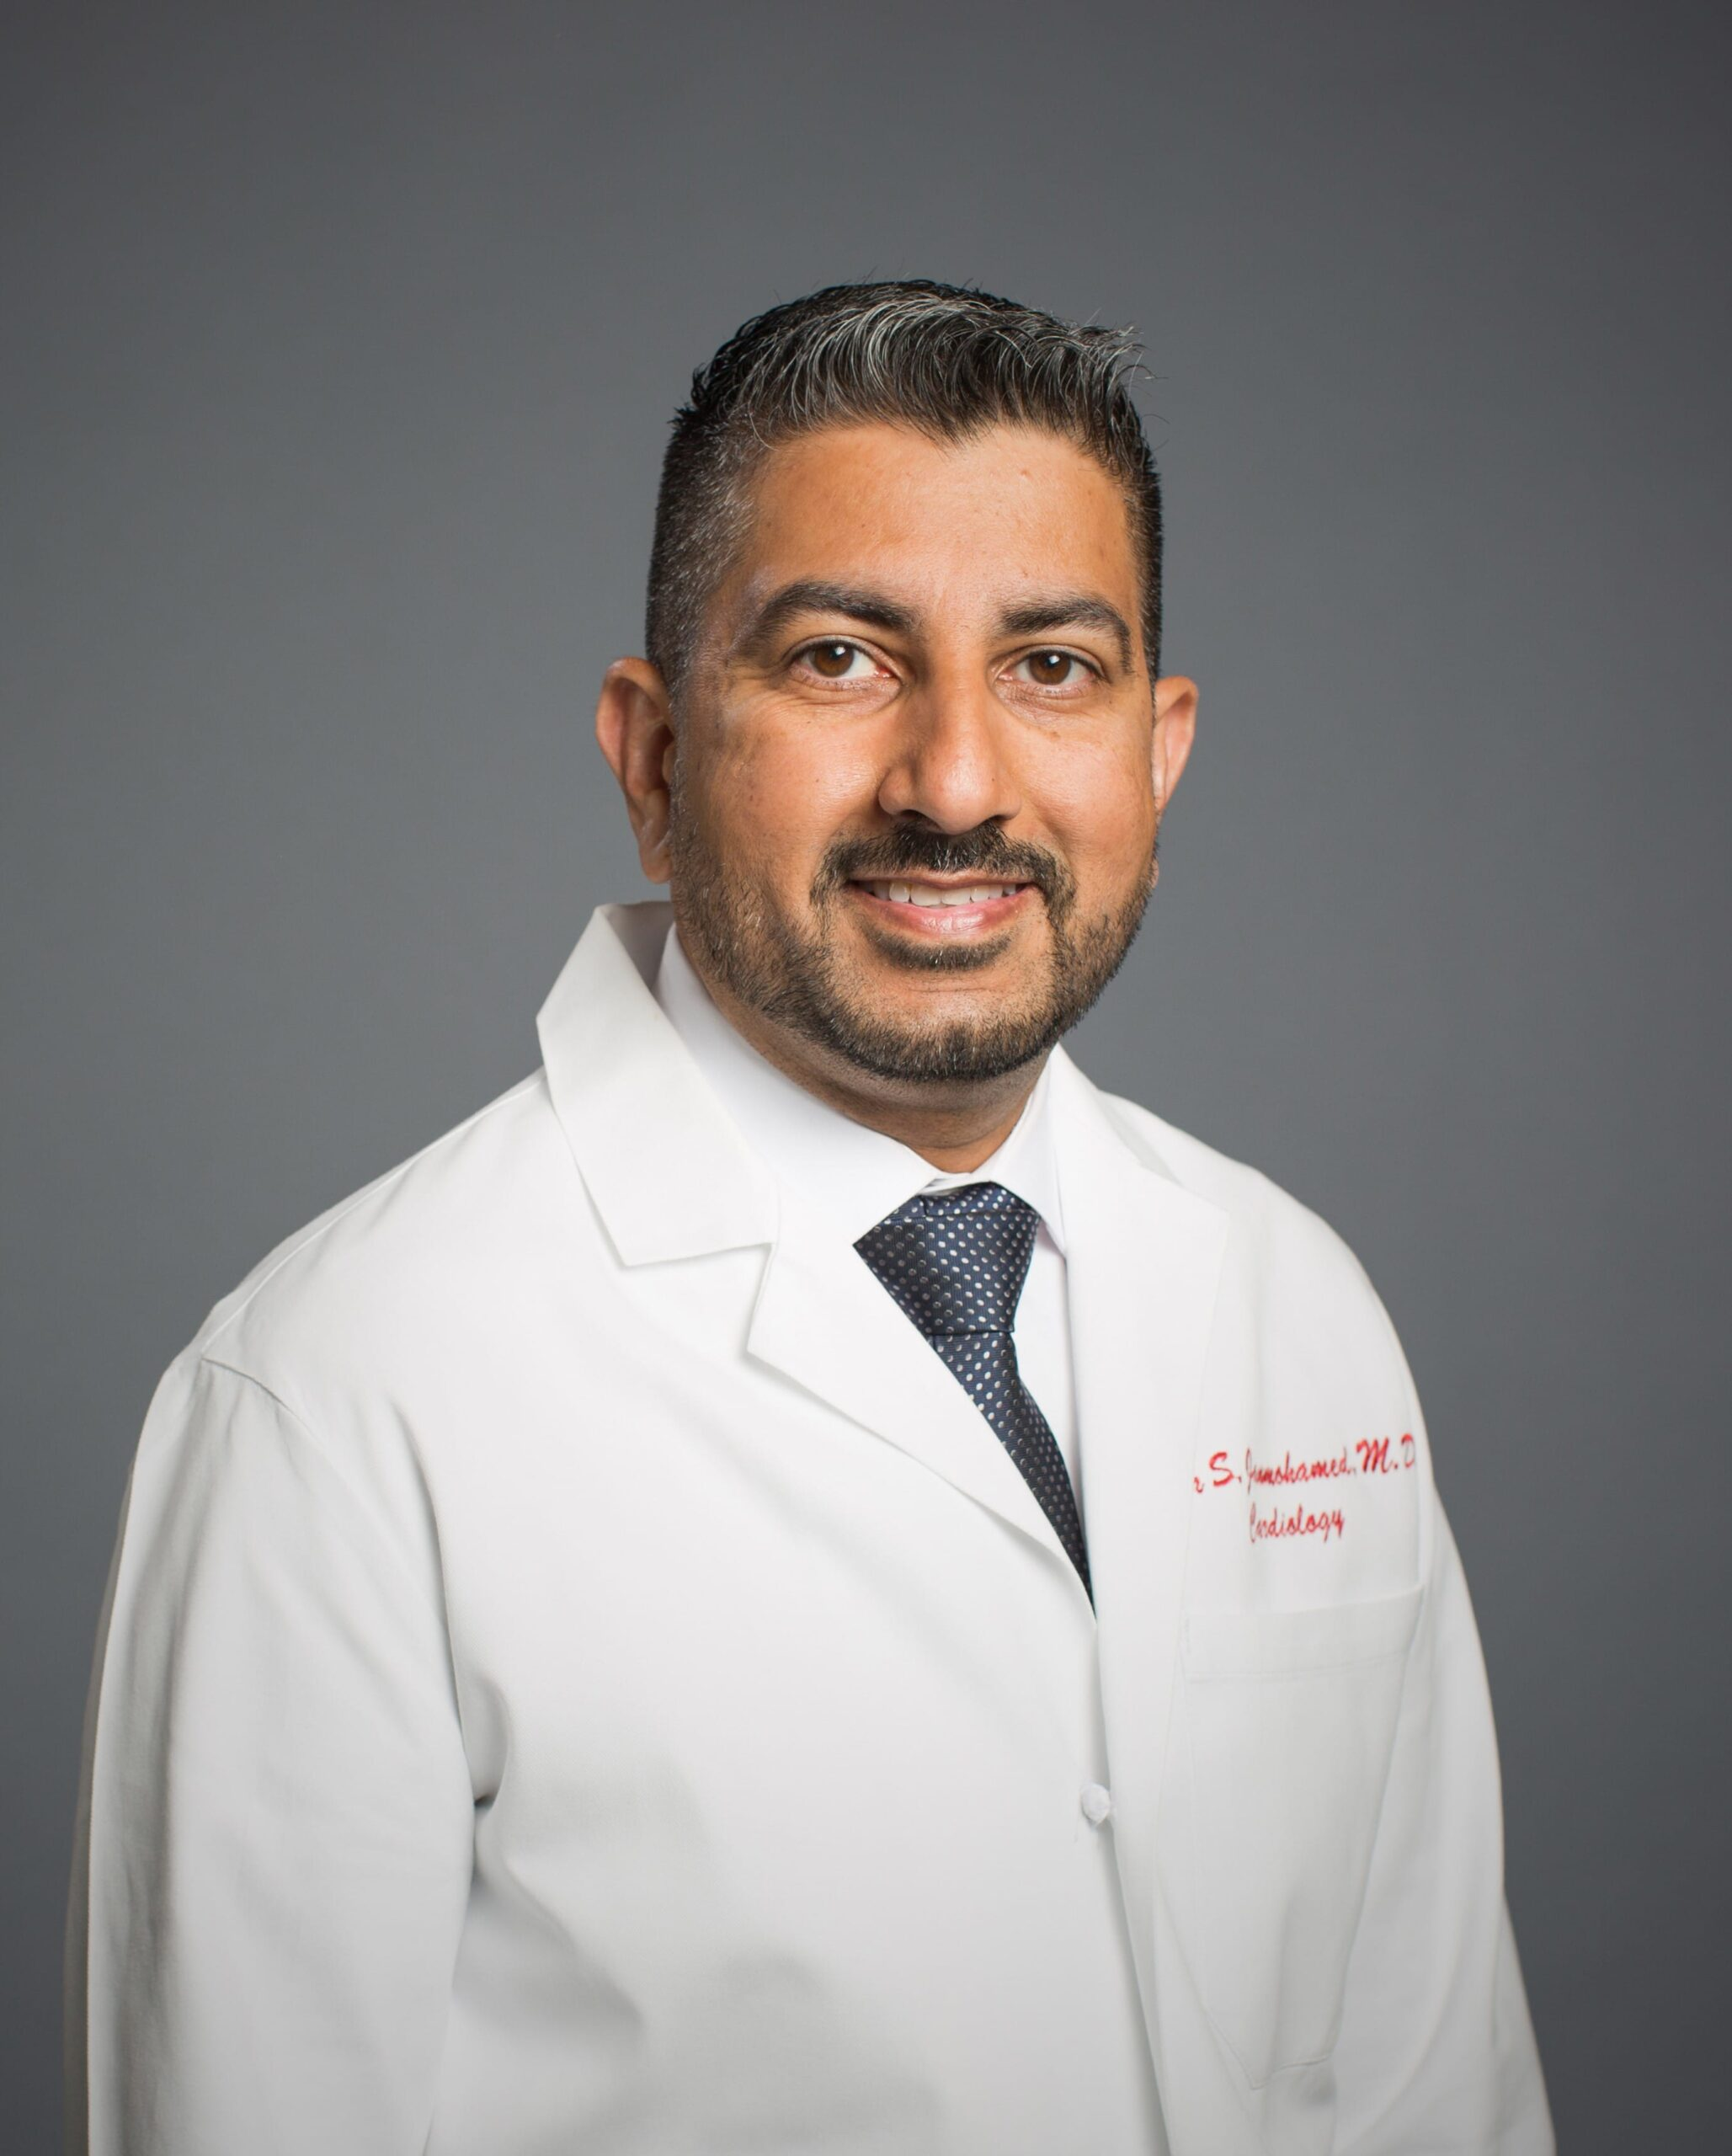 Dr. Munir Janmohamed Uses Technology to Improve Cardiac Care